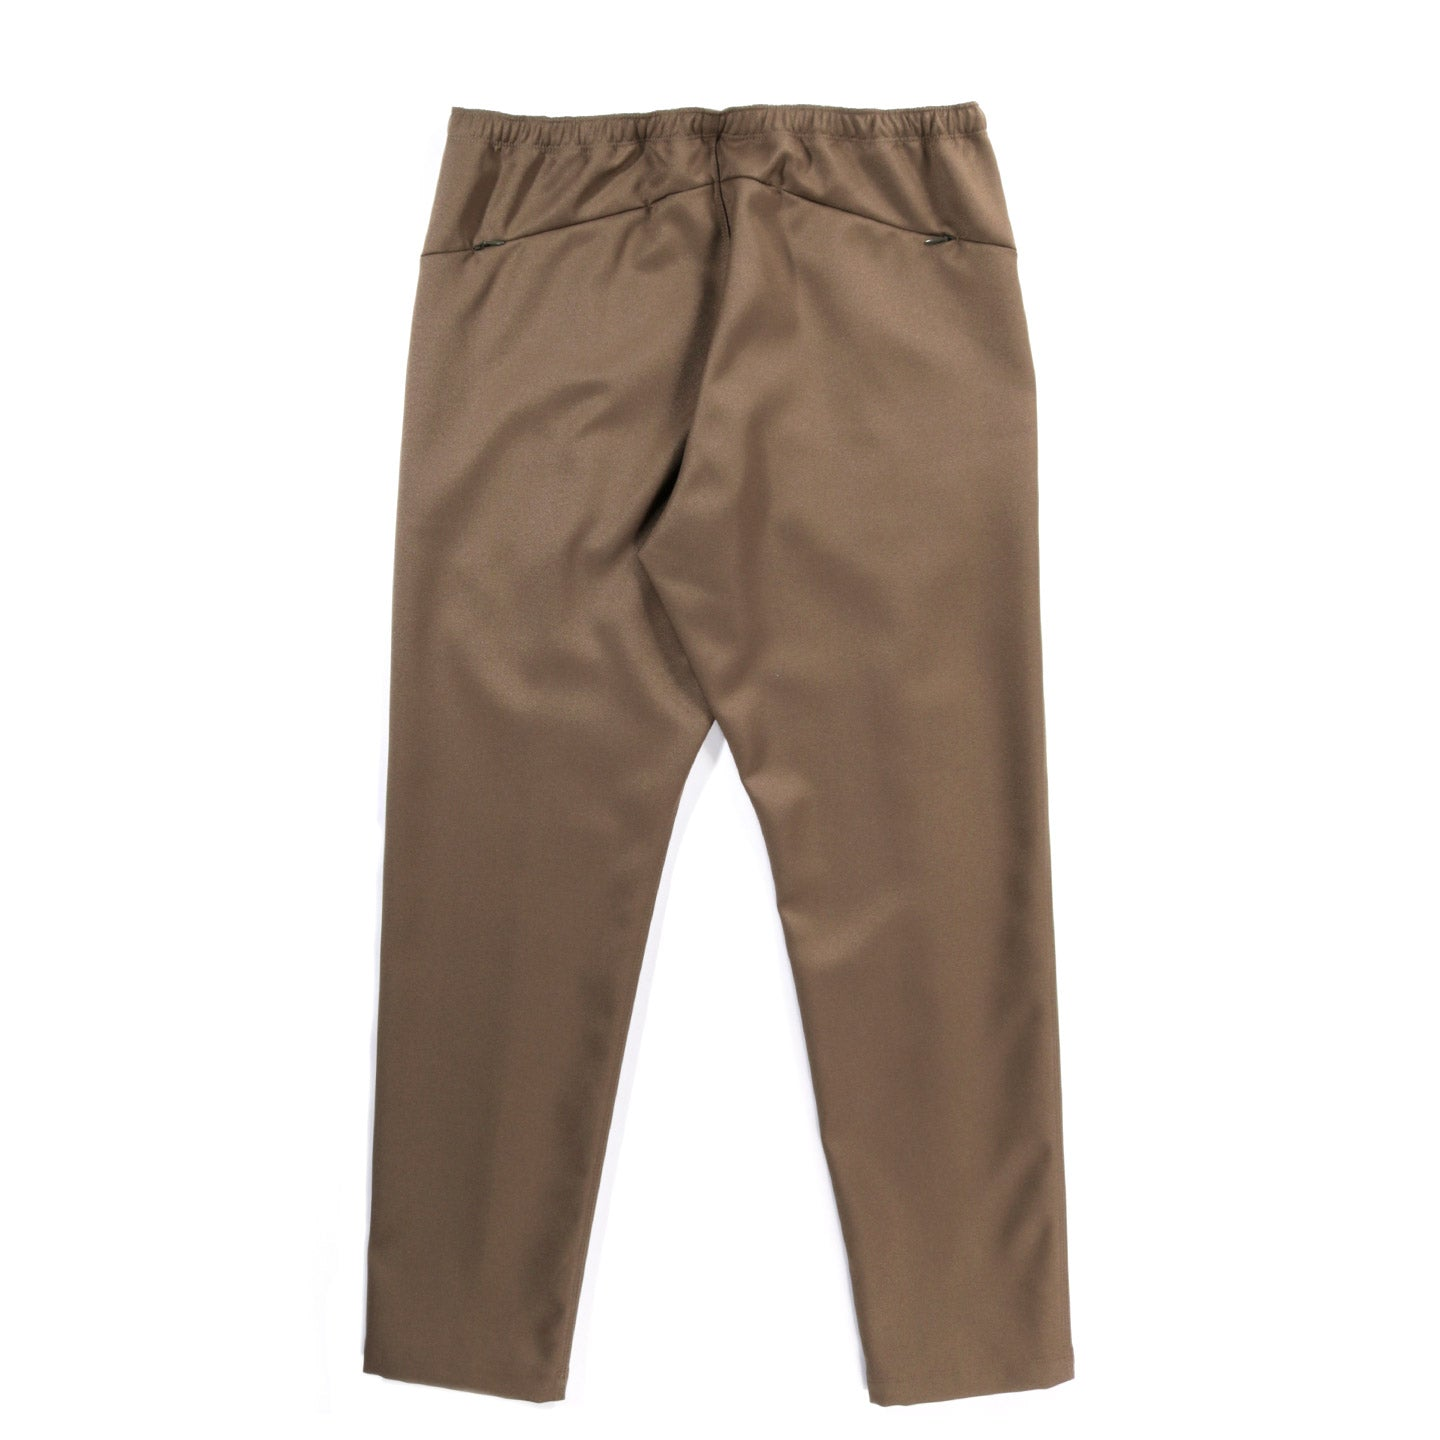 NEEDLES WARM UP PANT POLY COTTON TWILL OLIVE